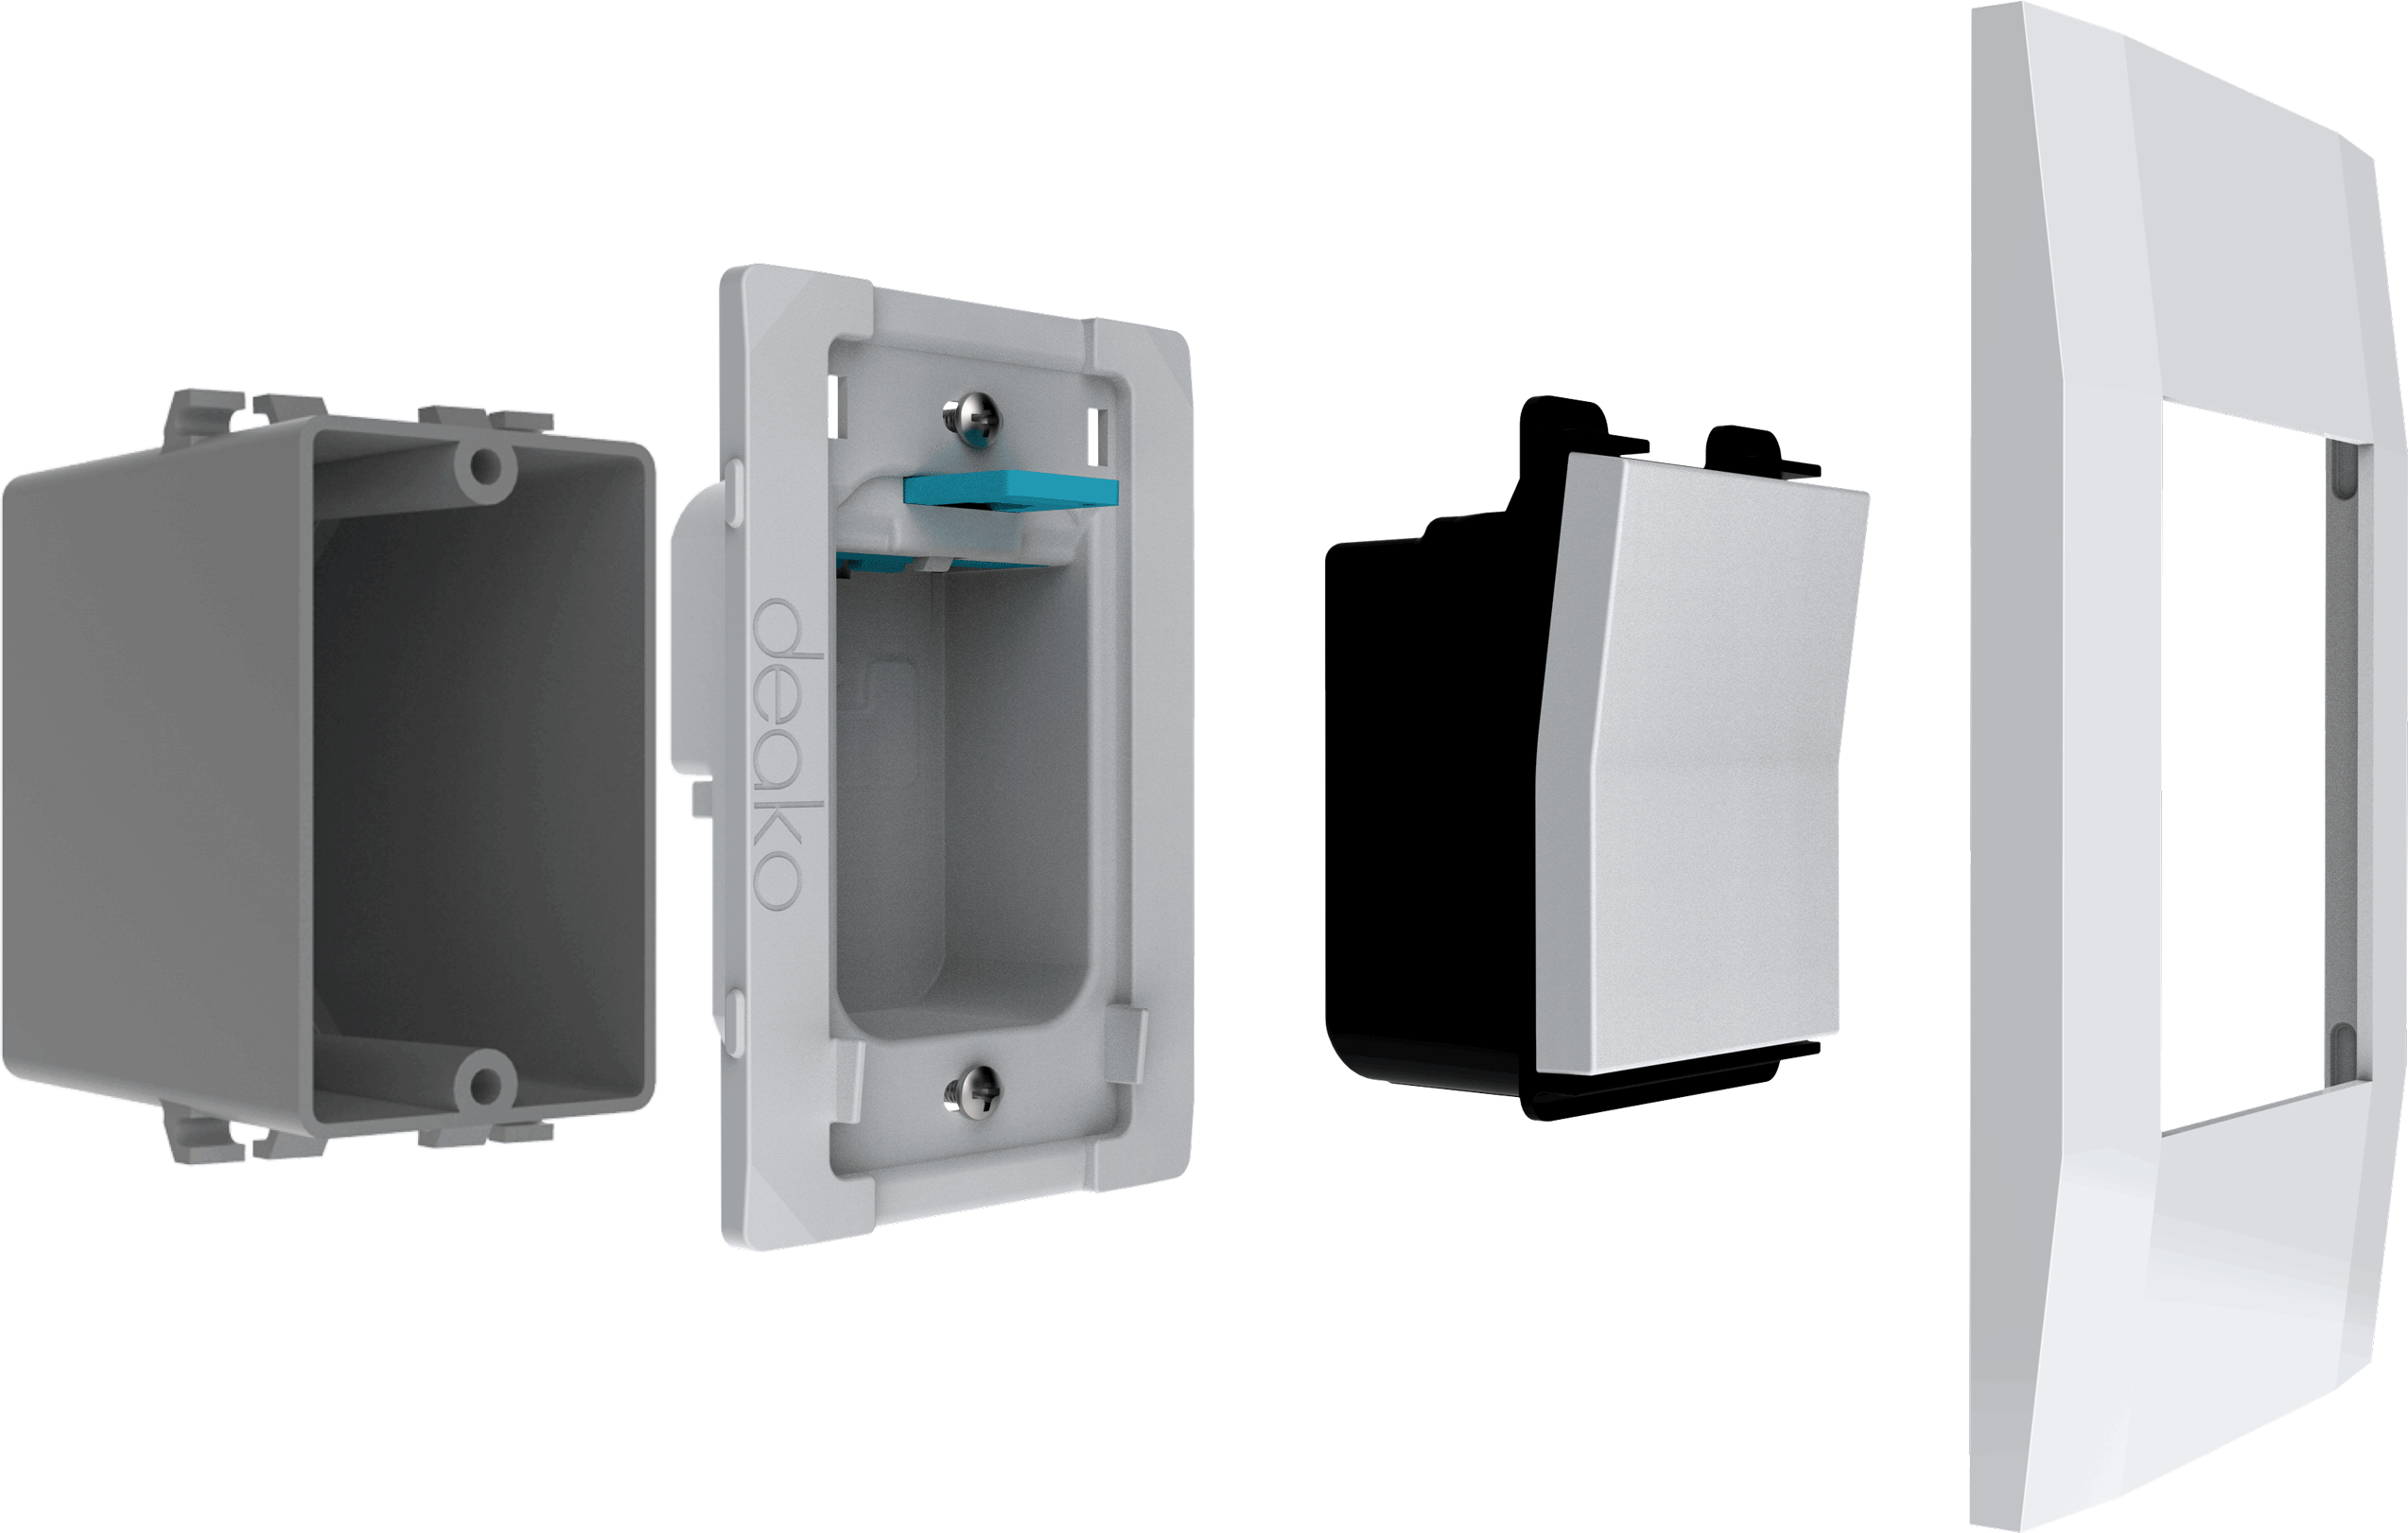 The Deako base system shown split apart into its three components.